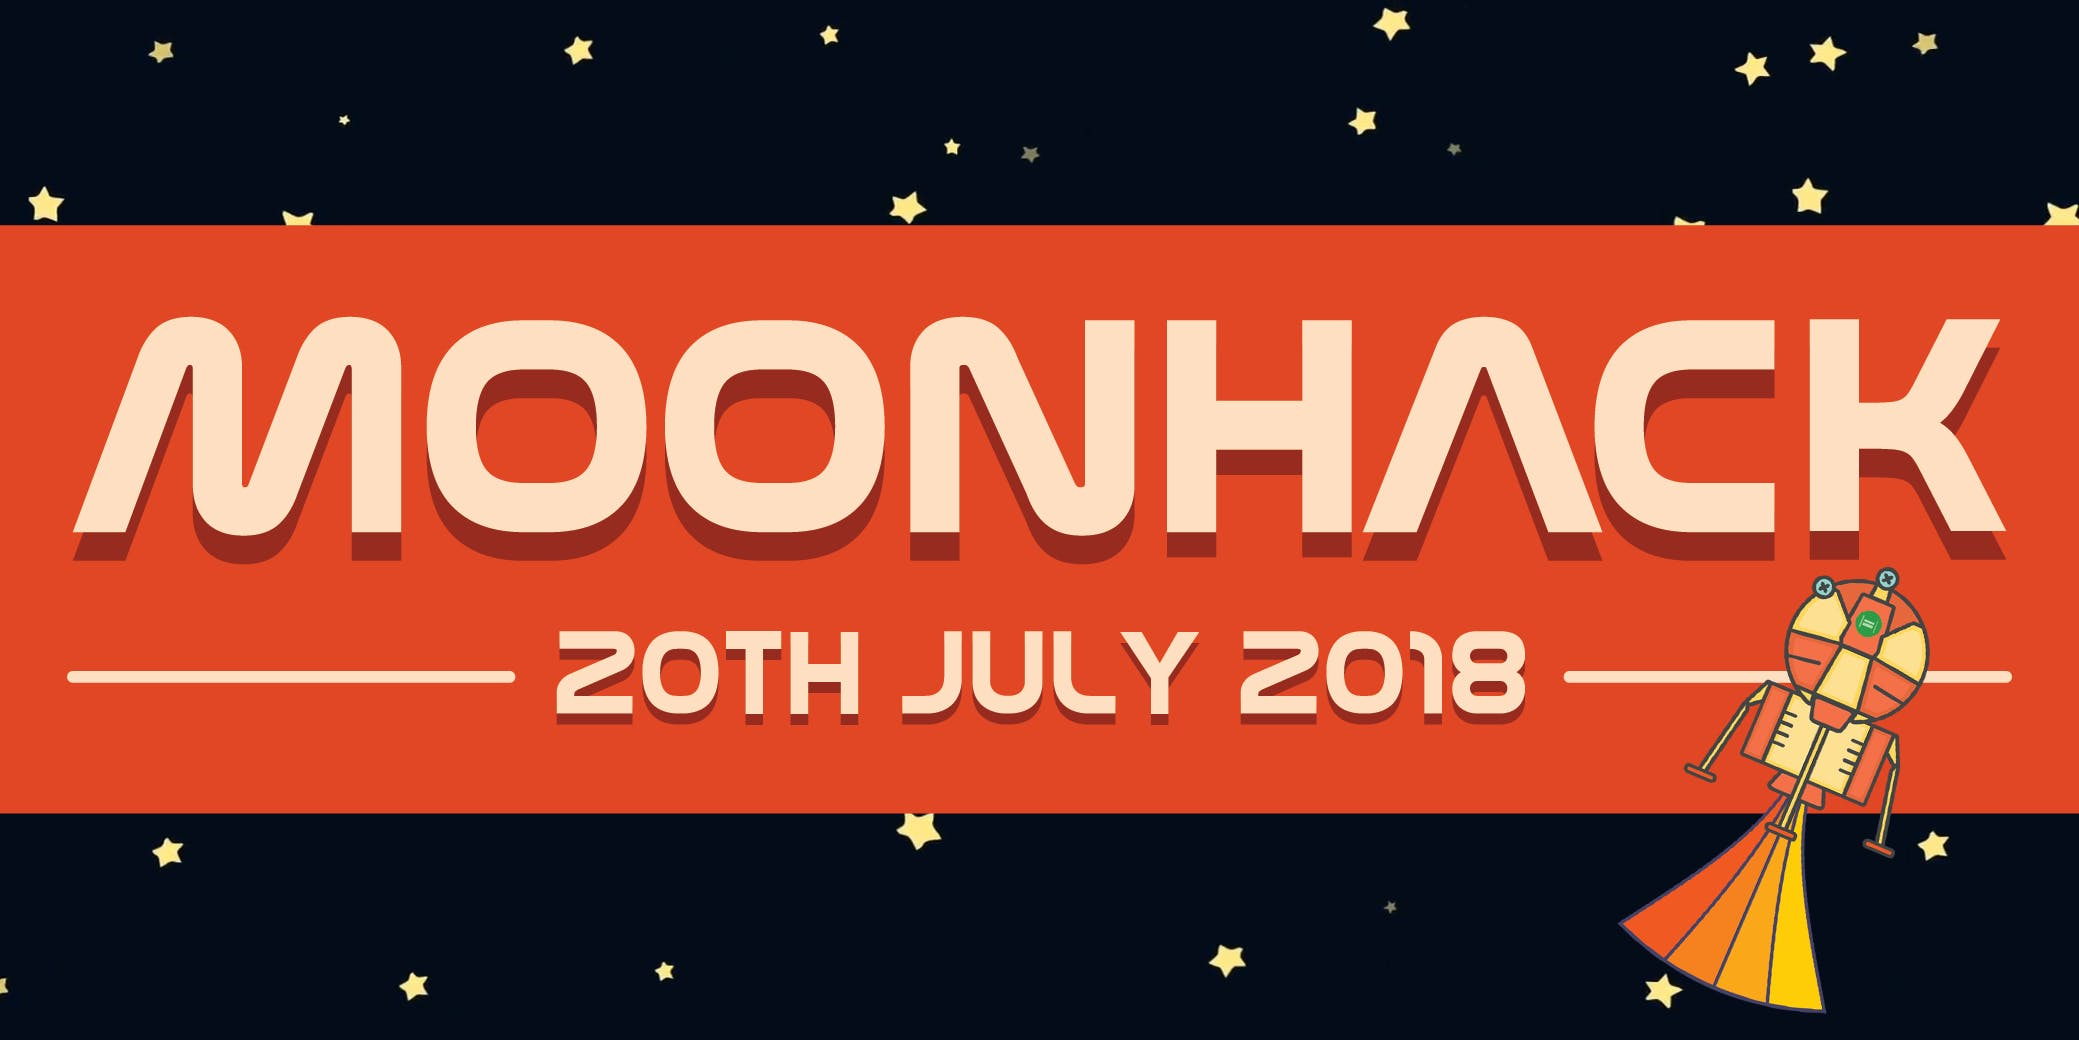 #MoonHack 2018 - Be part of a coding world re